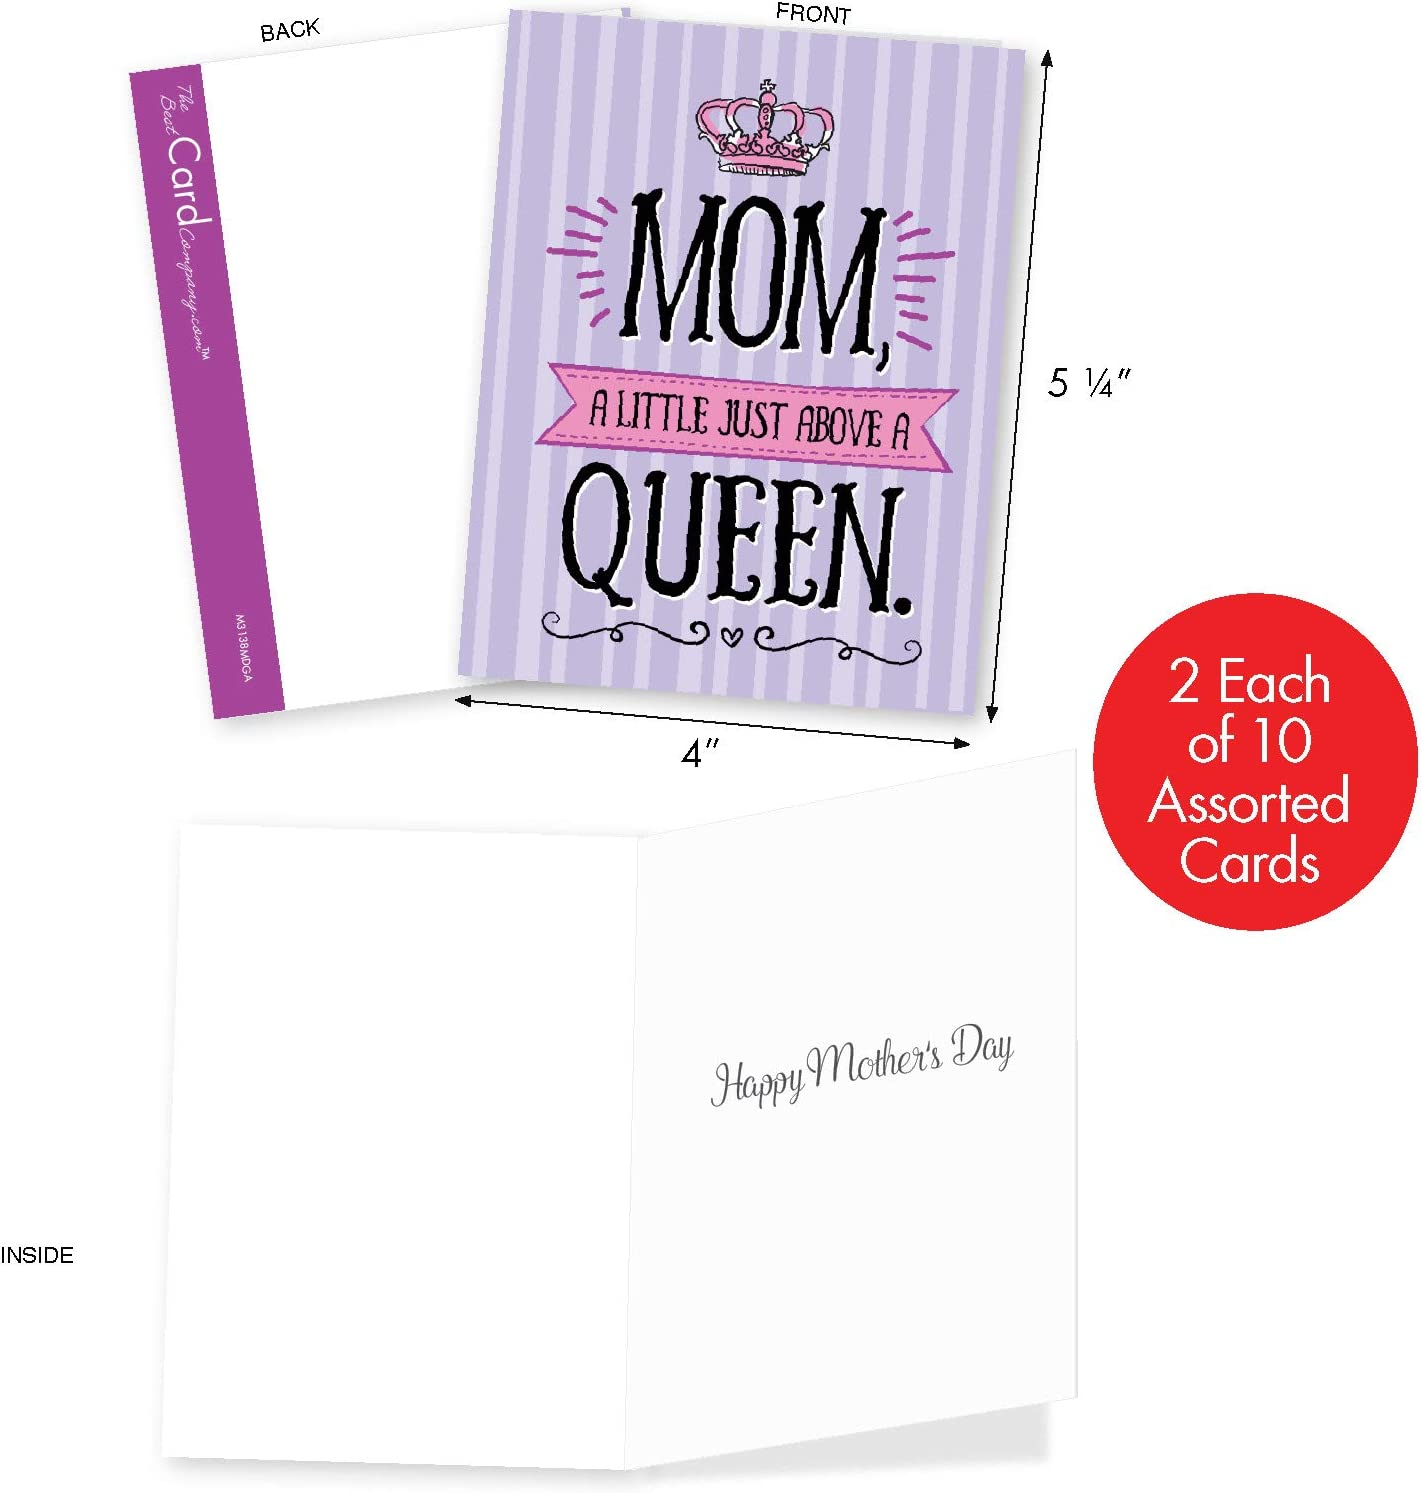 Boy mom card. Mothers day card Mom with toddlers Mother card Snack Distributor card Funny mom card Toddler mom card